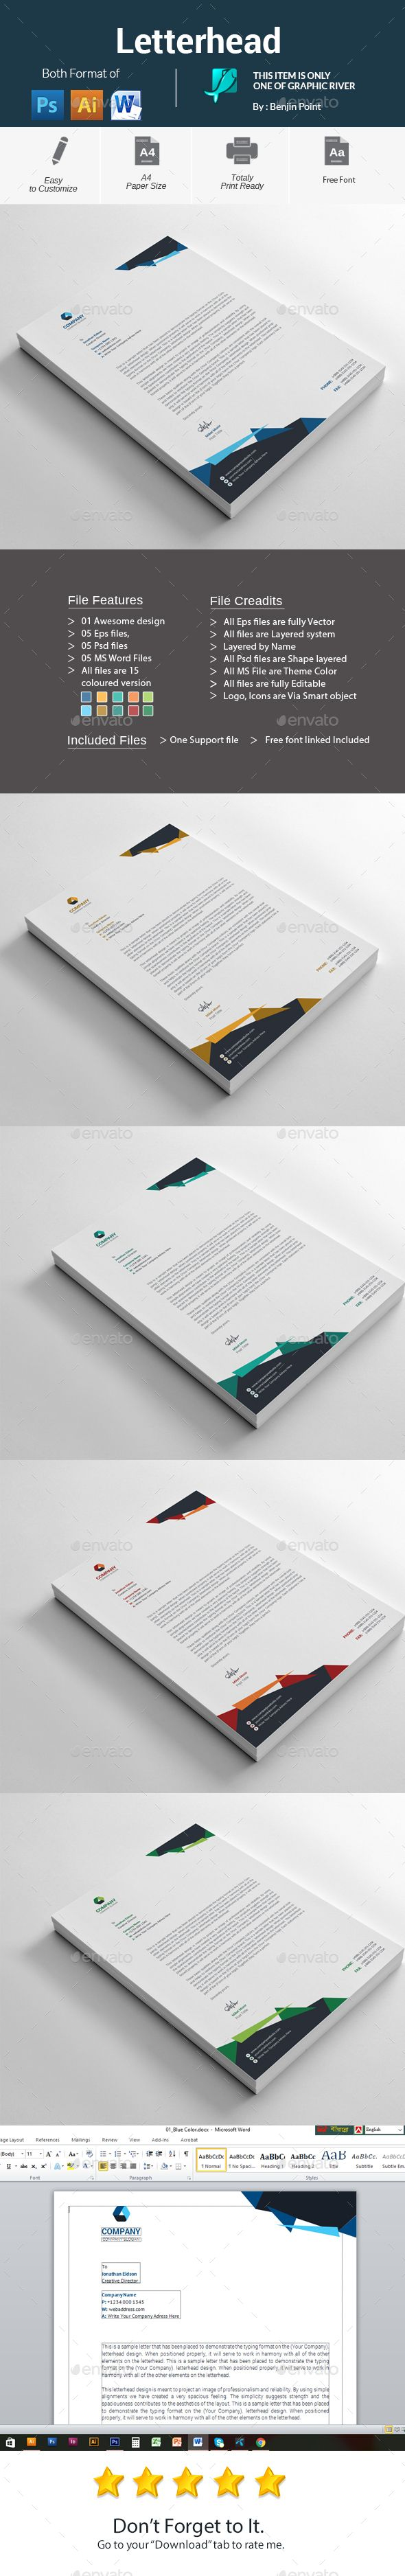 Letterhead template psd vector eps ai illustrator ms word letterhead template psd vector eps ai illustrator ms word spiritdancerdesigns Image collections